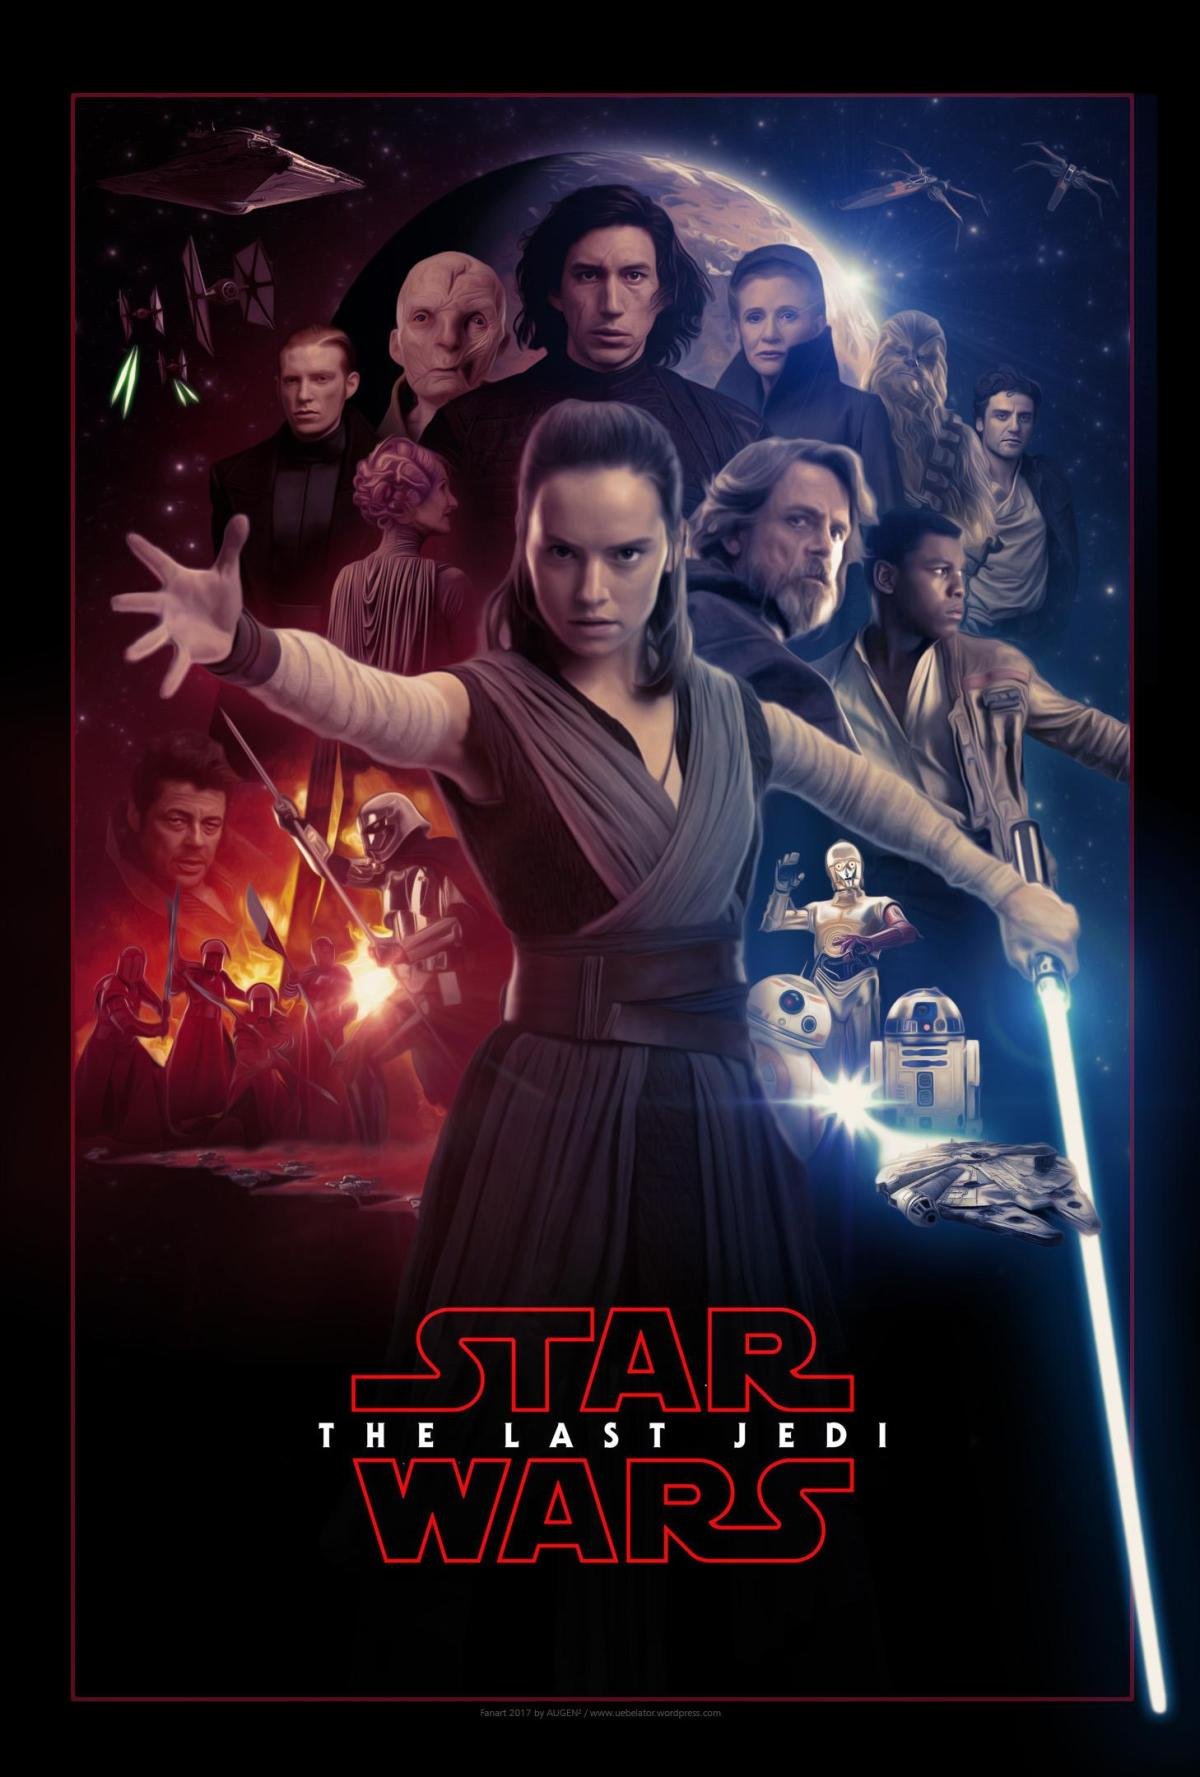 Star Wars: The Last Jedi – Bad but not Unwatchable